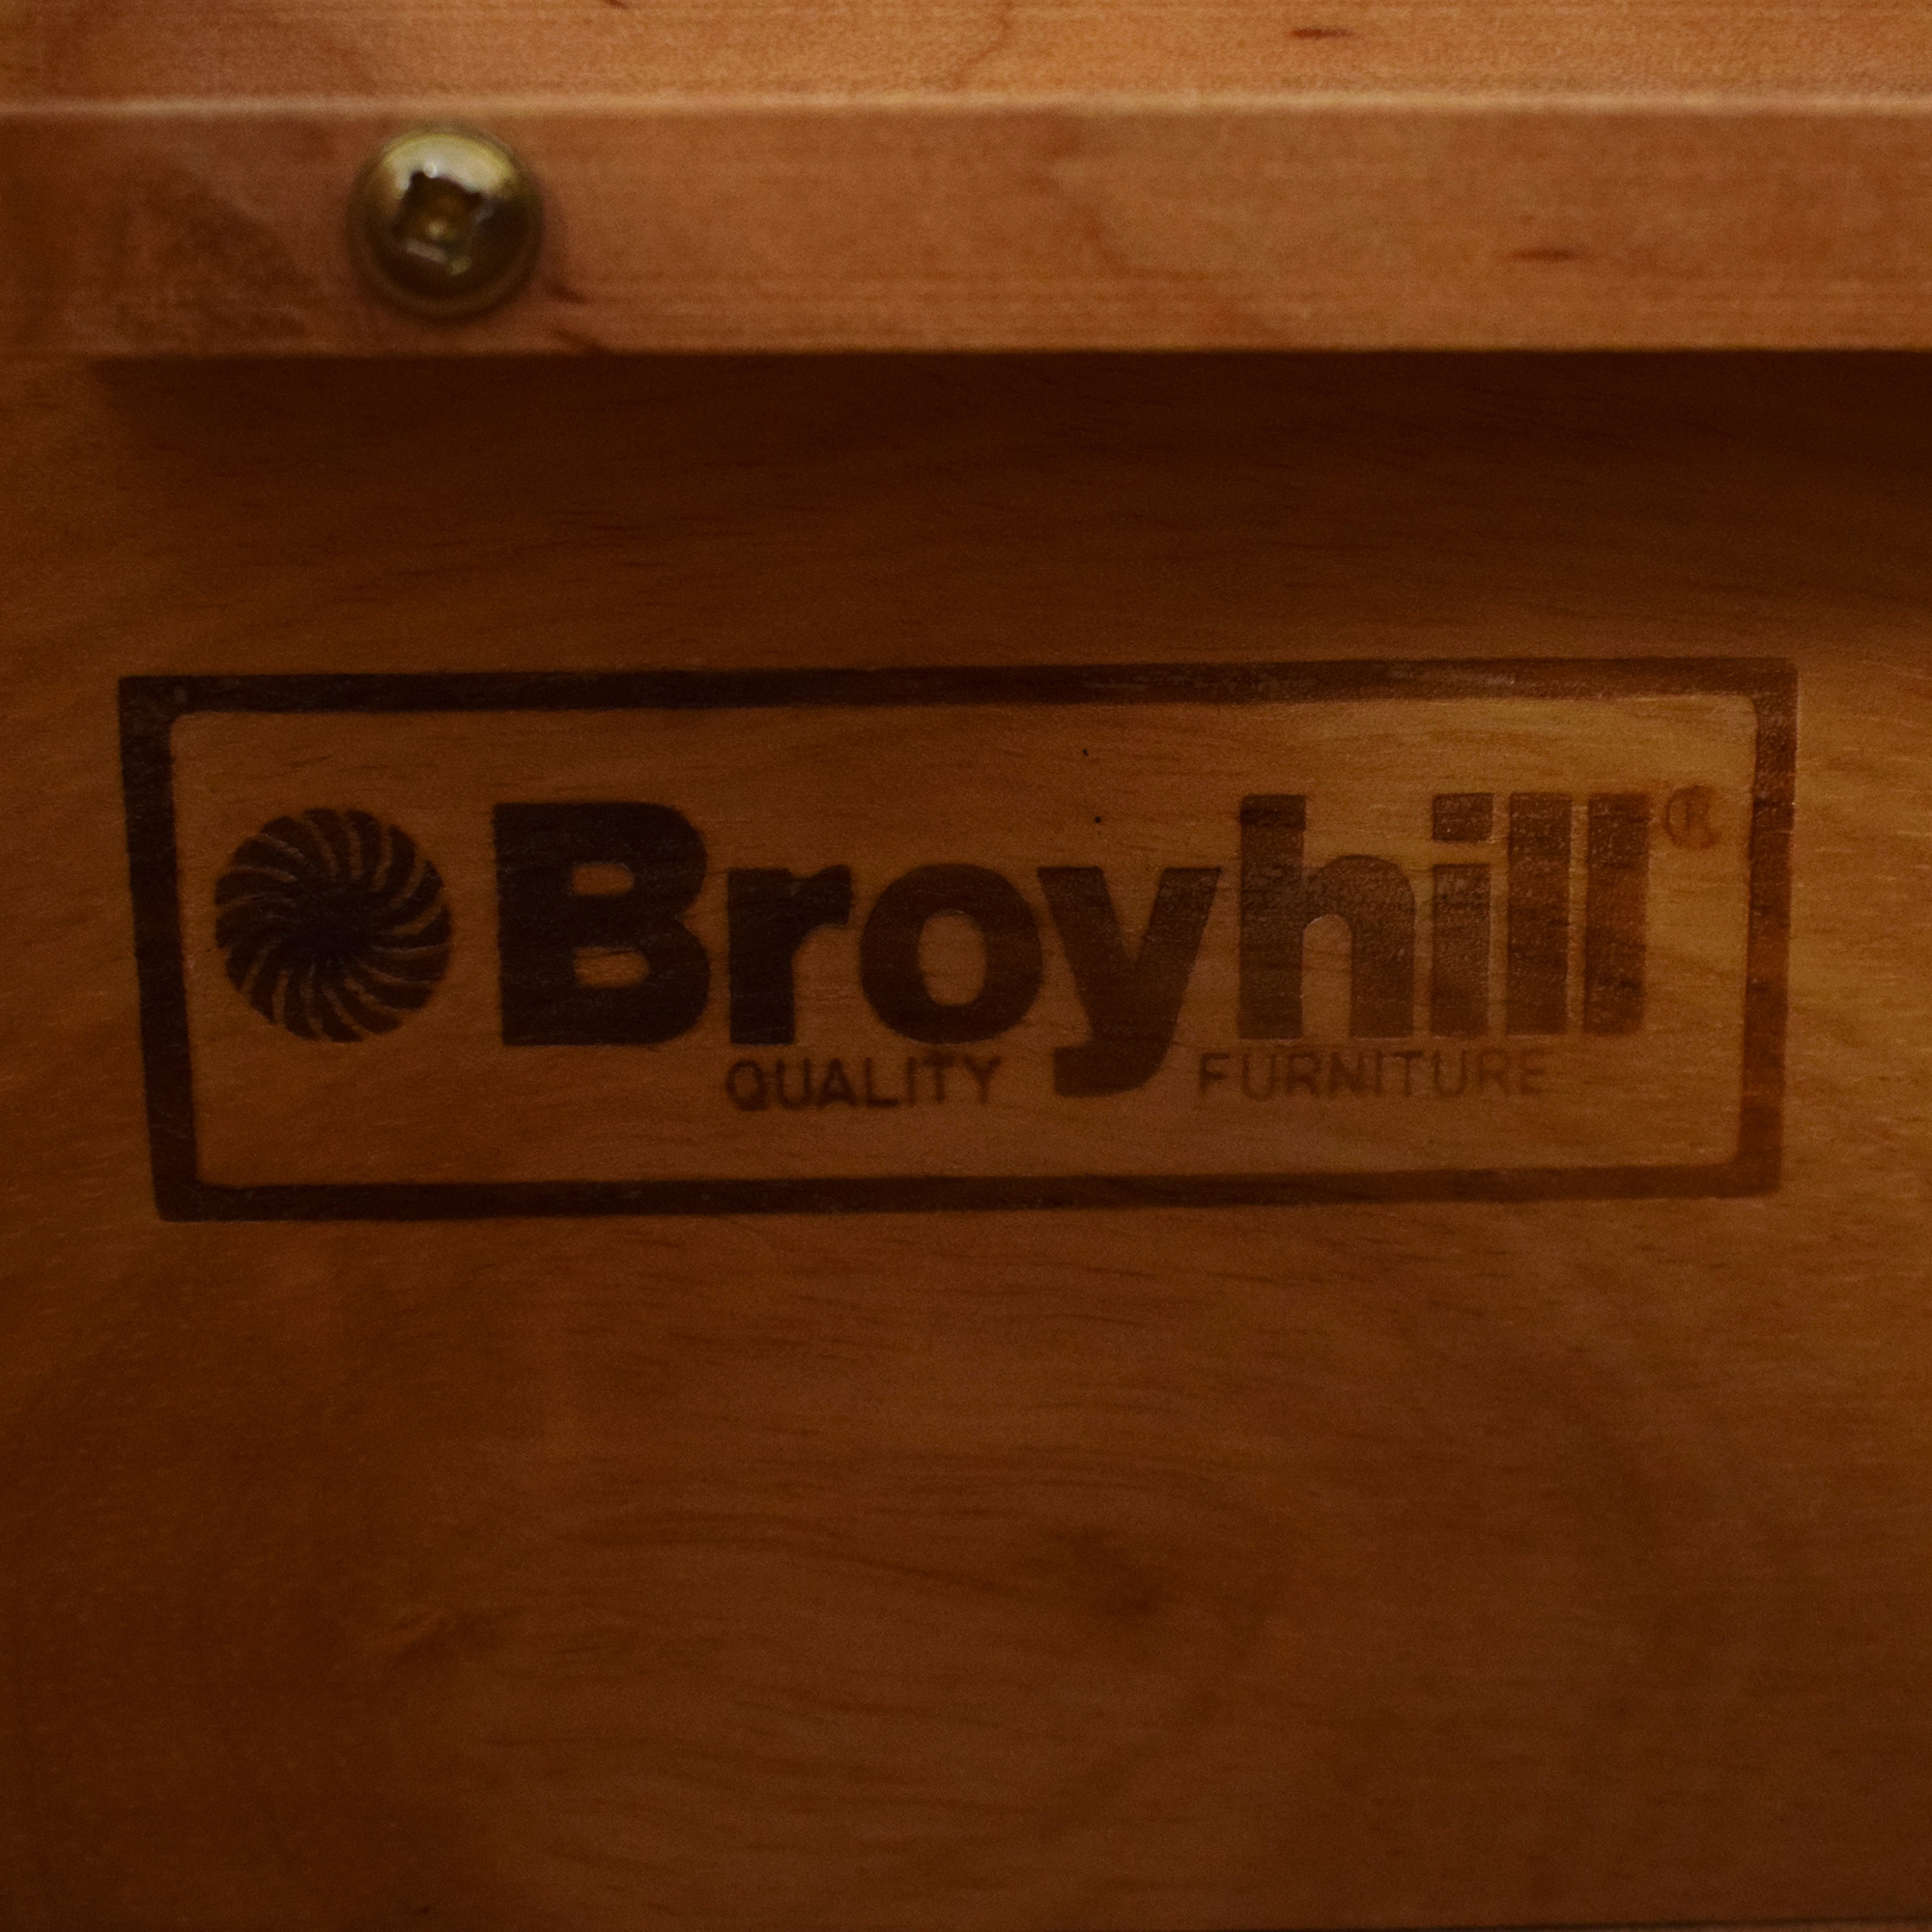 Broyhill Furniture Broyhill Shaker Style Dresser and Mirror pa